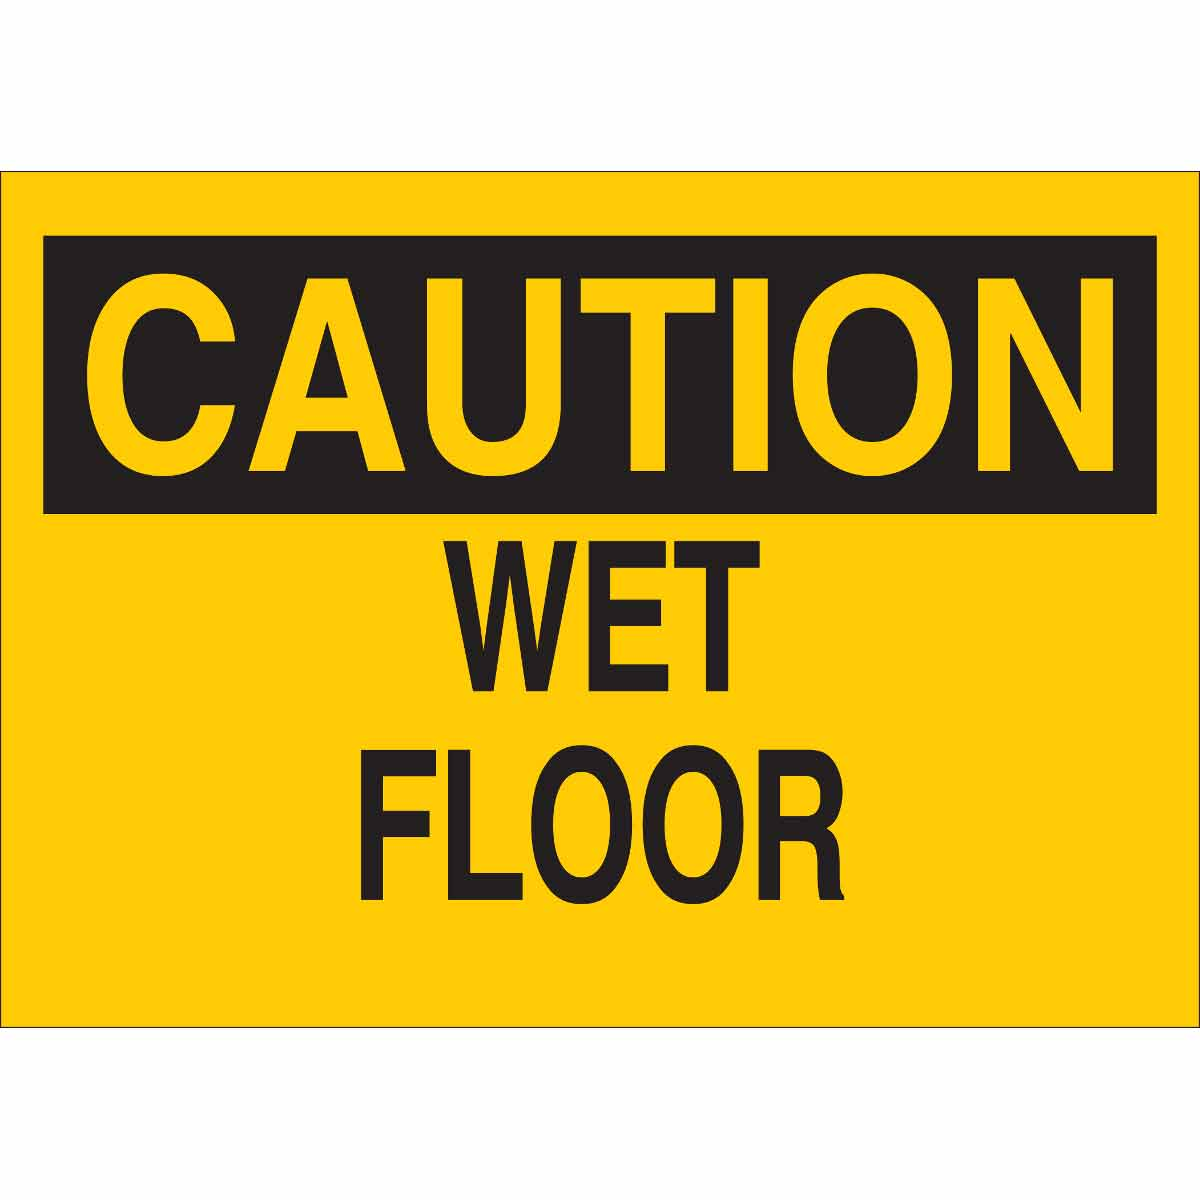 wet caution floor signs sign warning